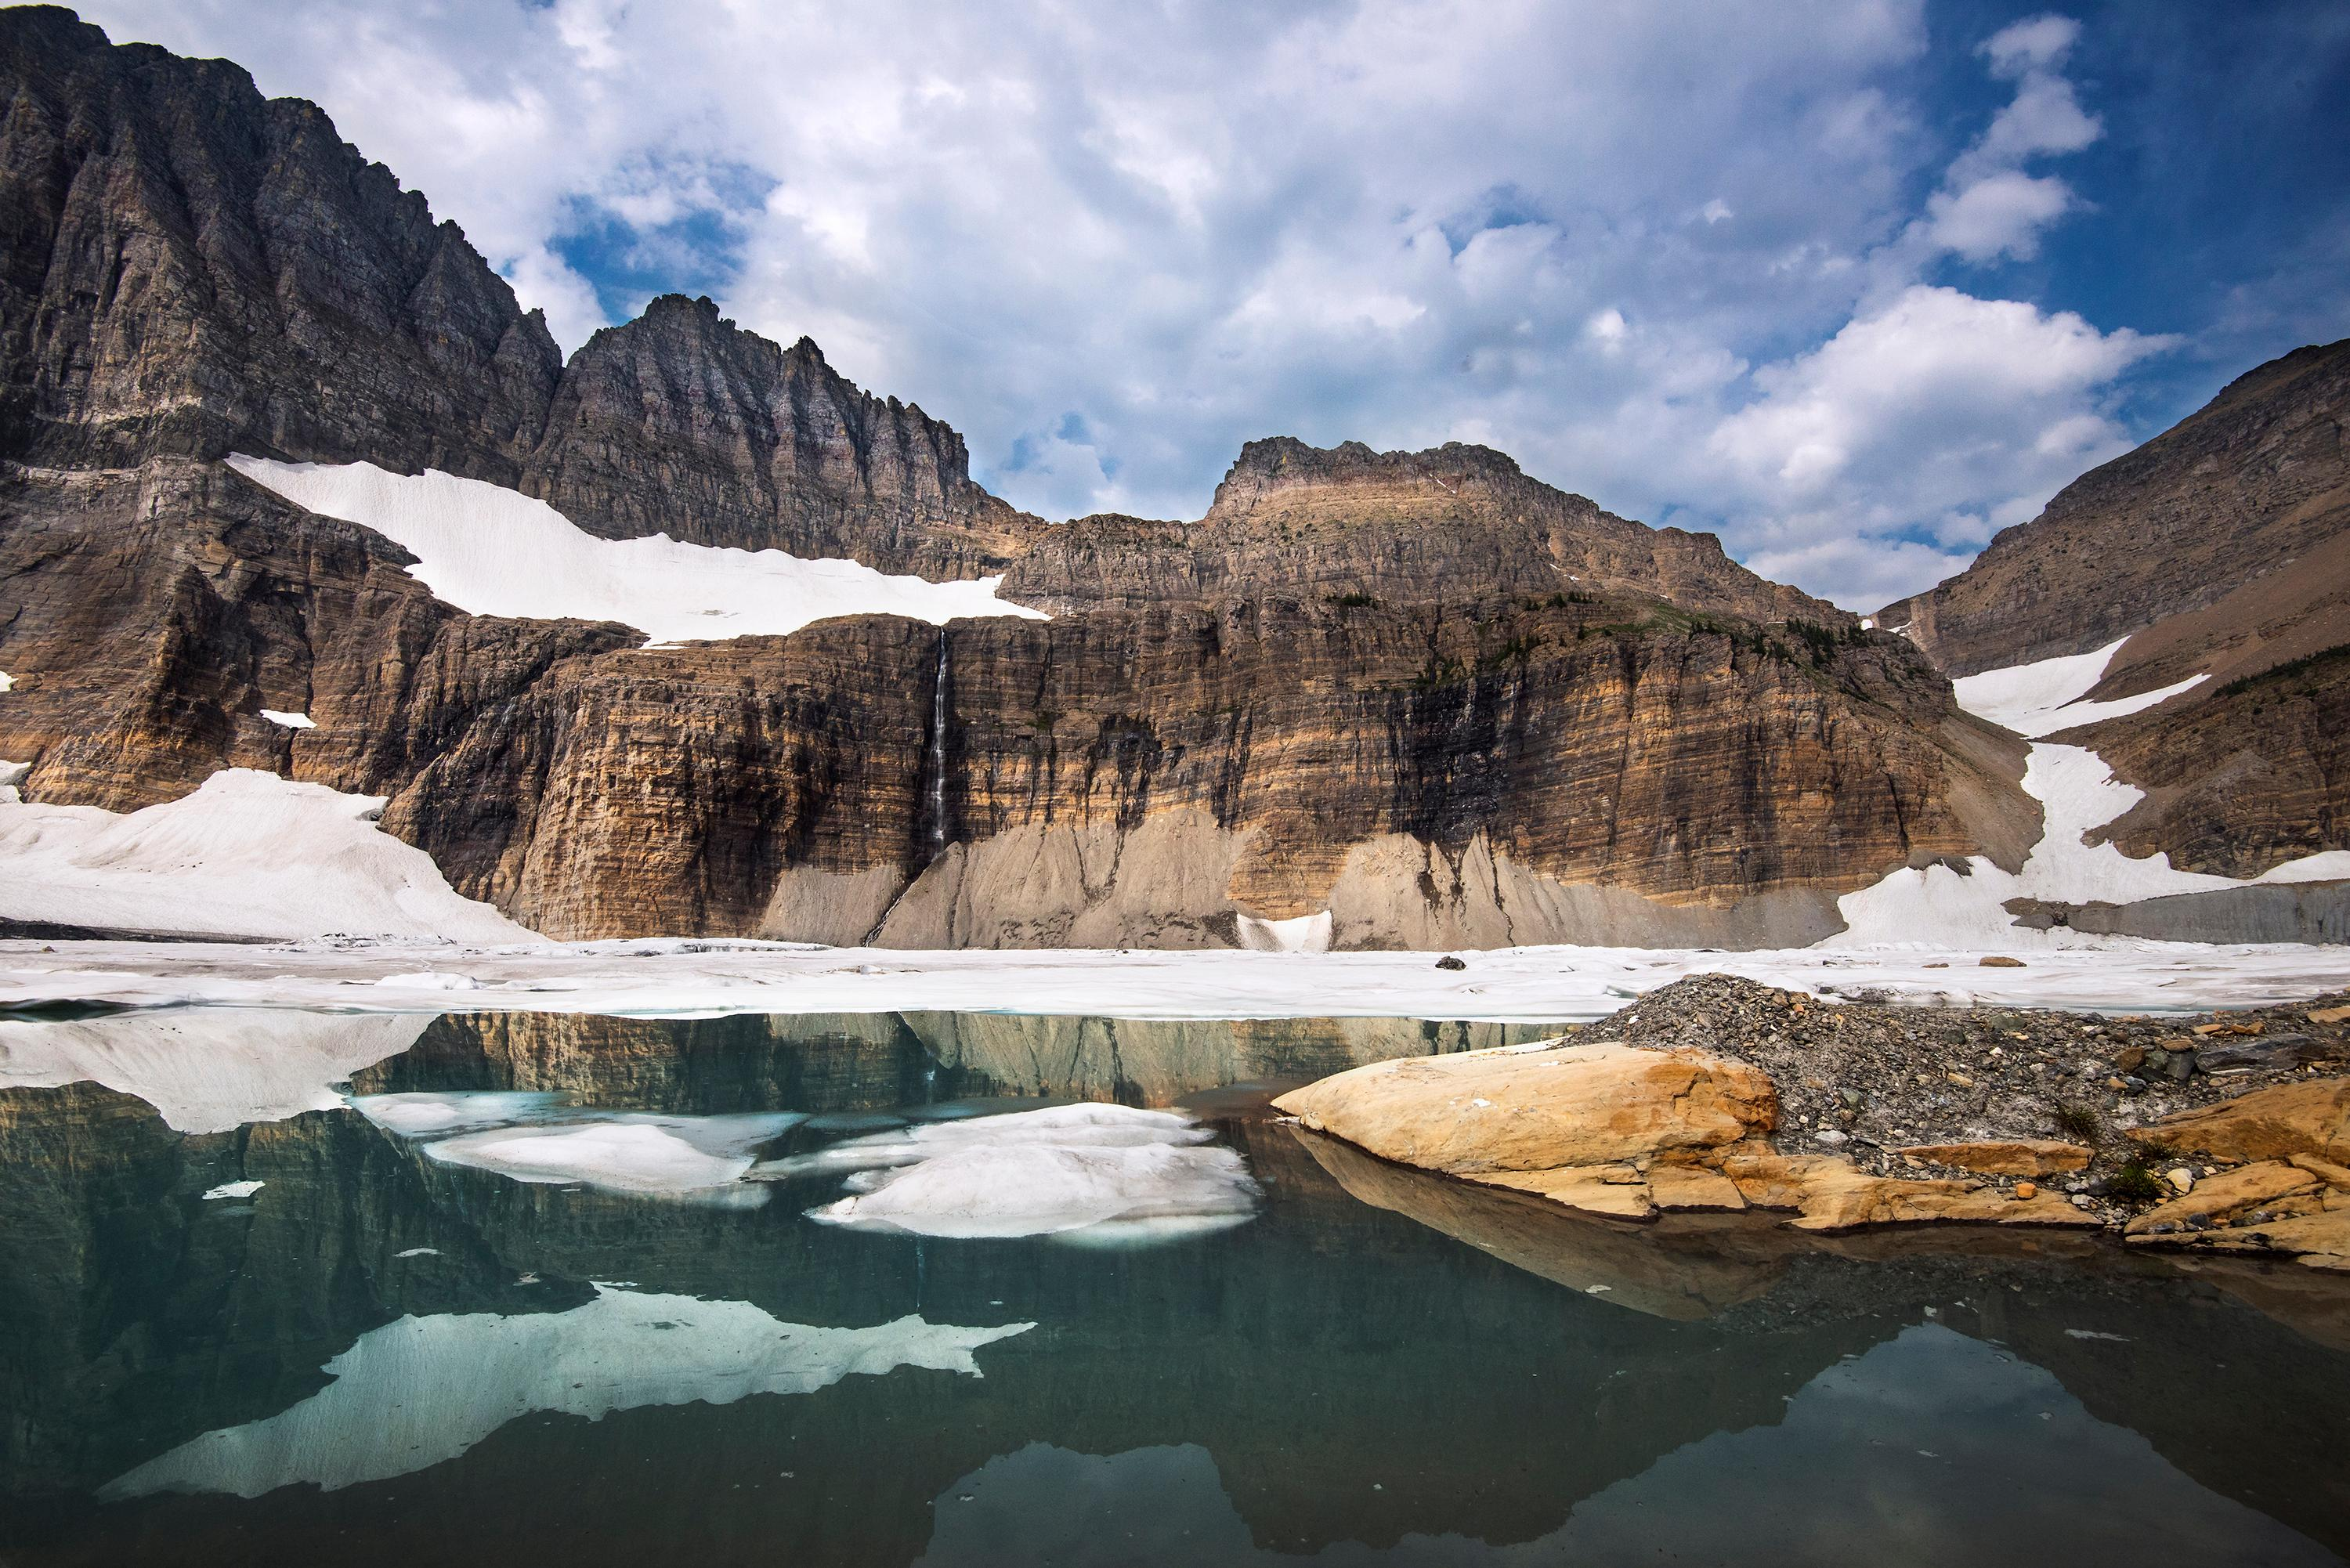 The park consists of more than one million acres and is a true outdoors person location. In the mid-19th century, the park hosted over 150 glaciers, as of 2010, only 25 active glaciers remain and few can be easily seen. Photo Credit: NPS / Tim Rains